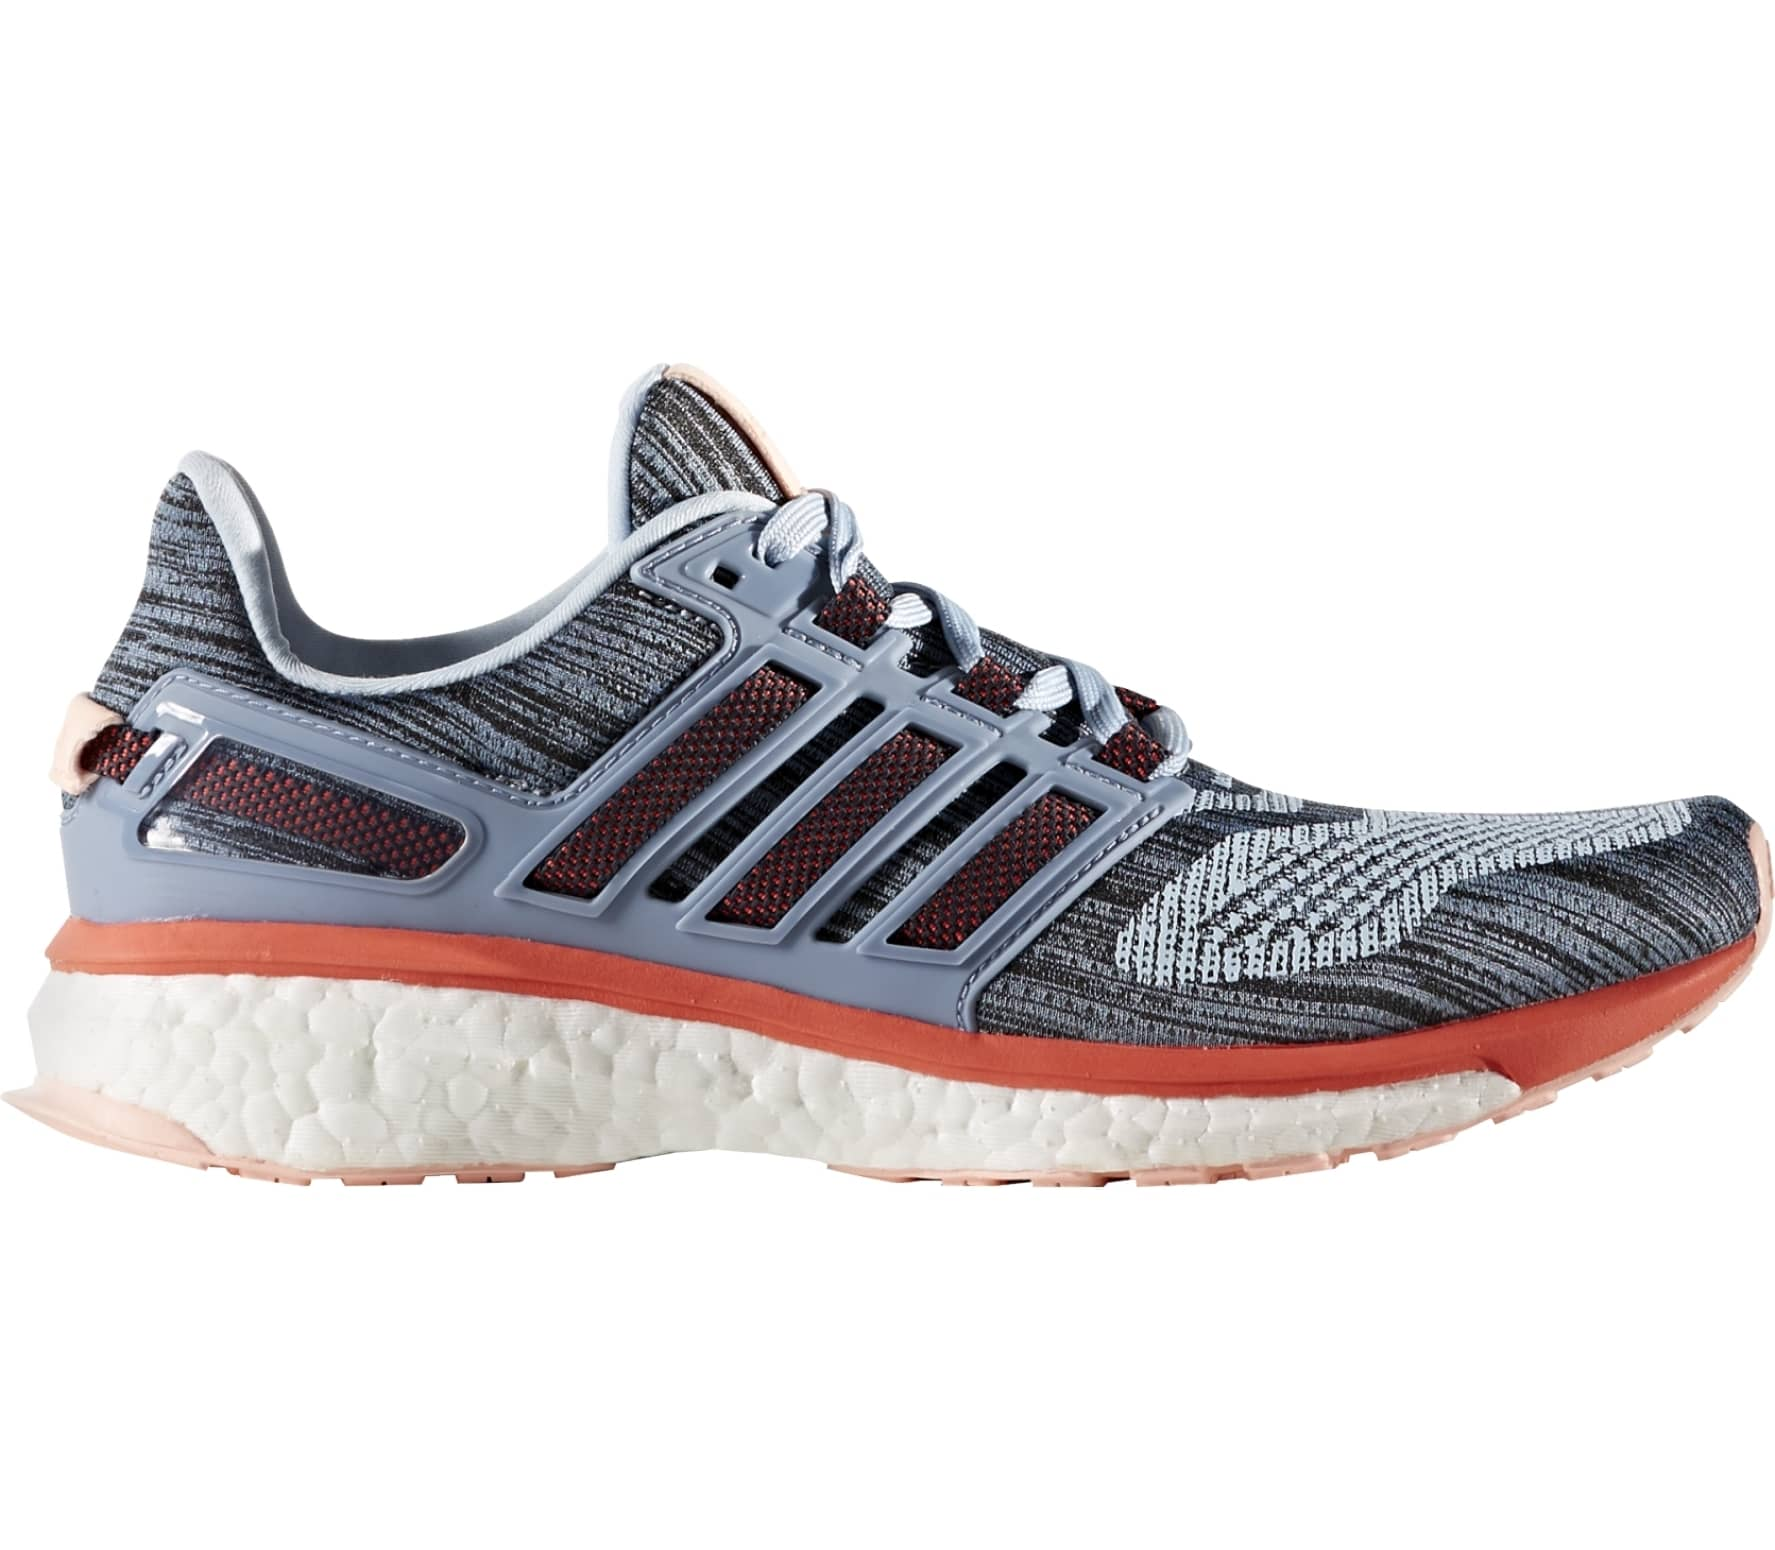 c41e143d4 Adidas - Energy Boost 3 women s running shoes (grey red) - buy it at ...